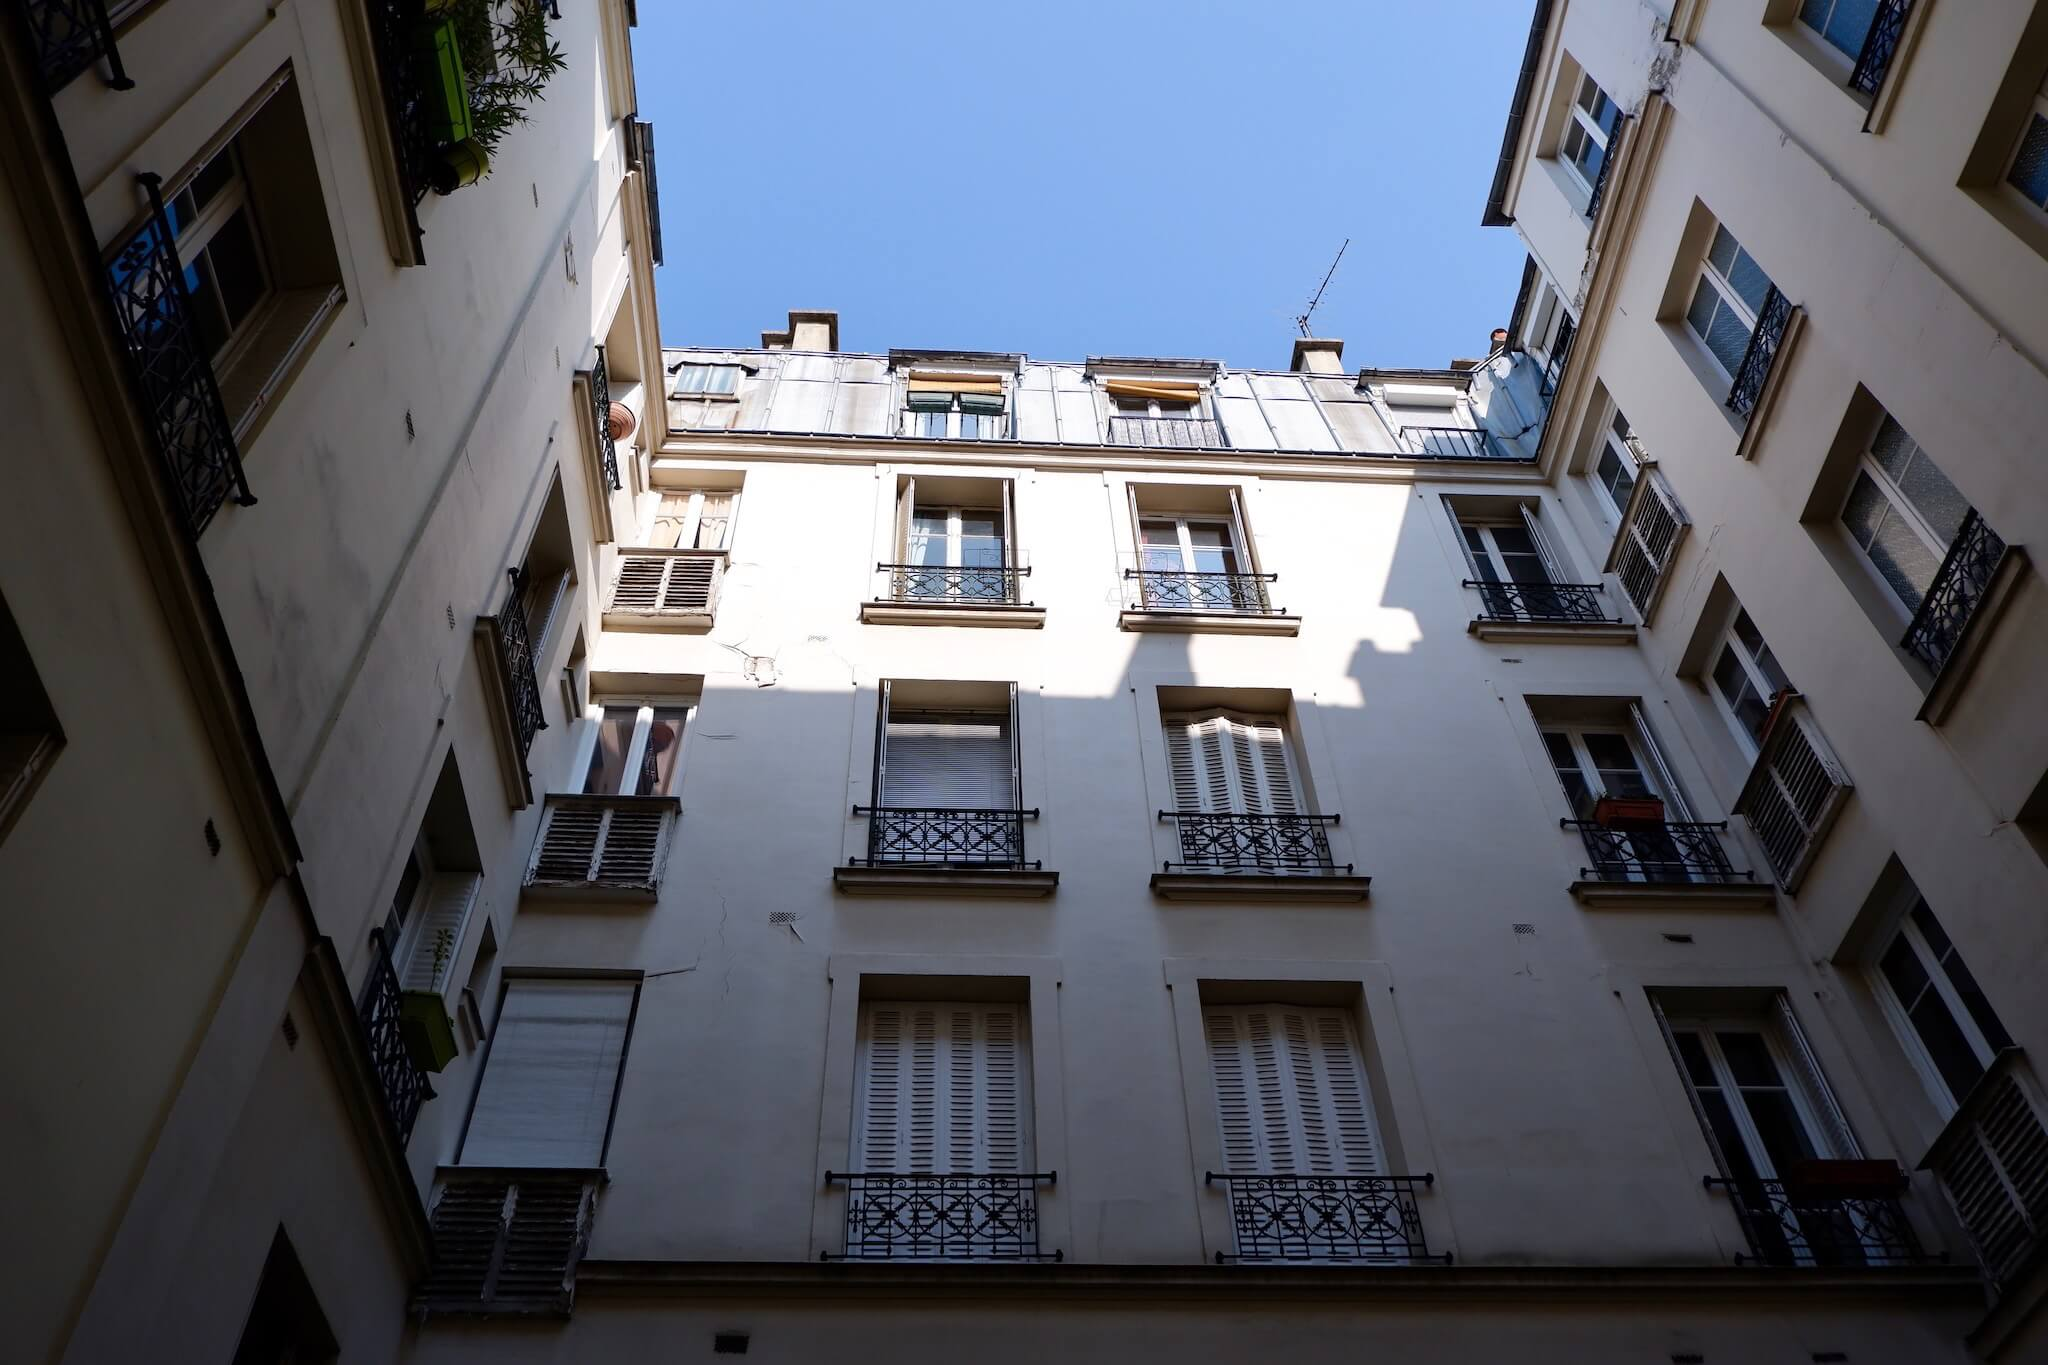 The courtyard view of Ali's Paris apartment, sunlight cast at the top of the building.